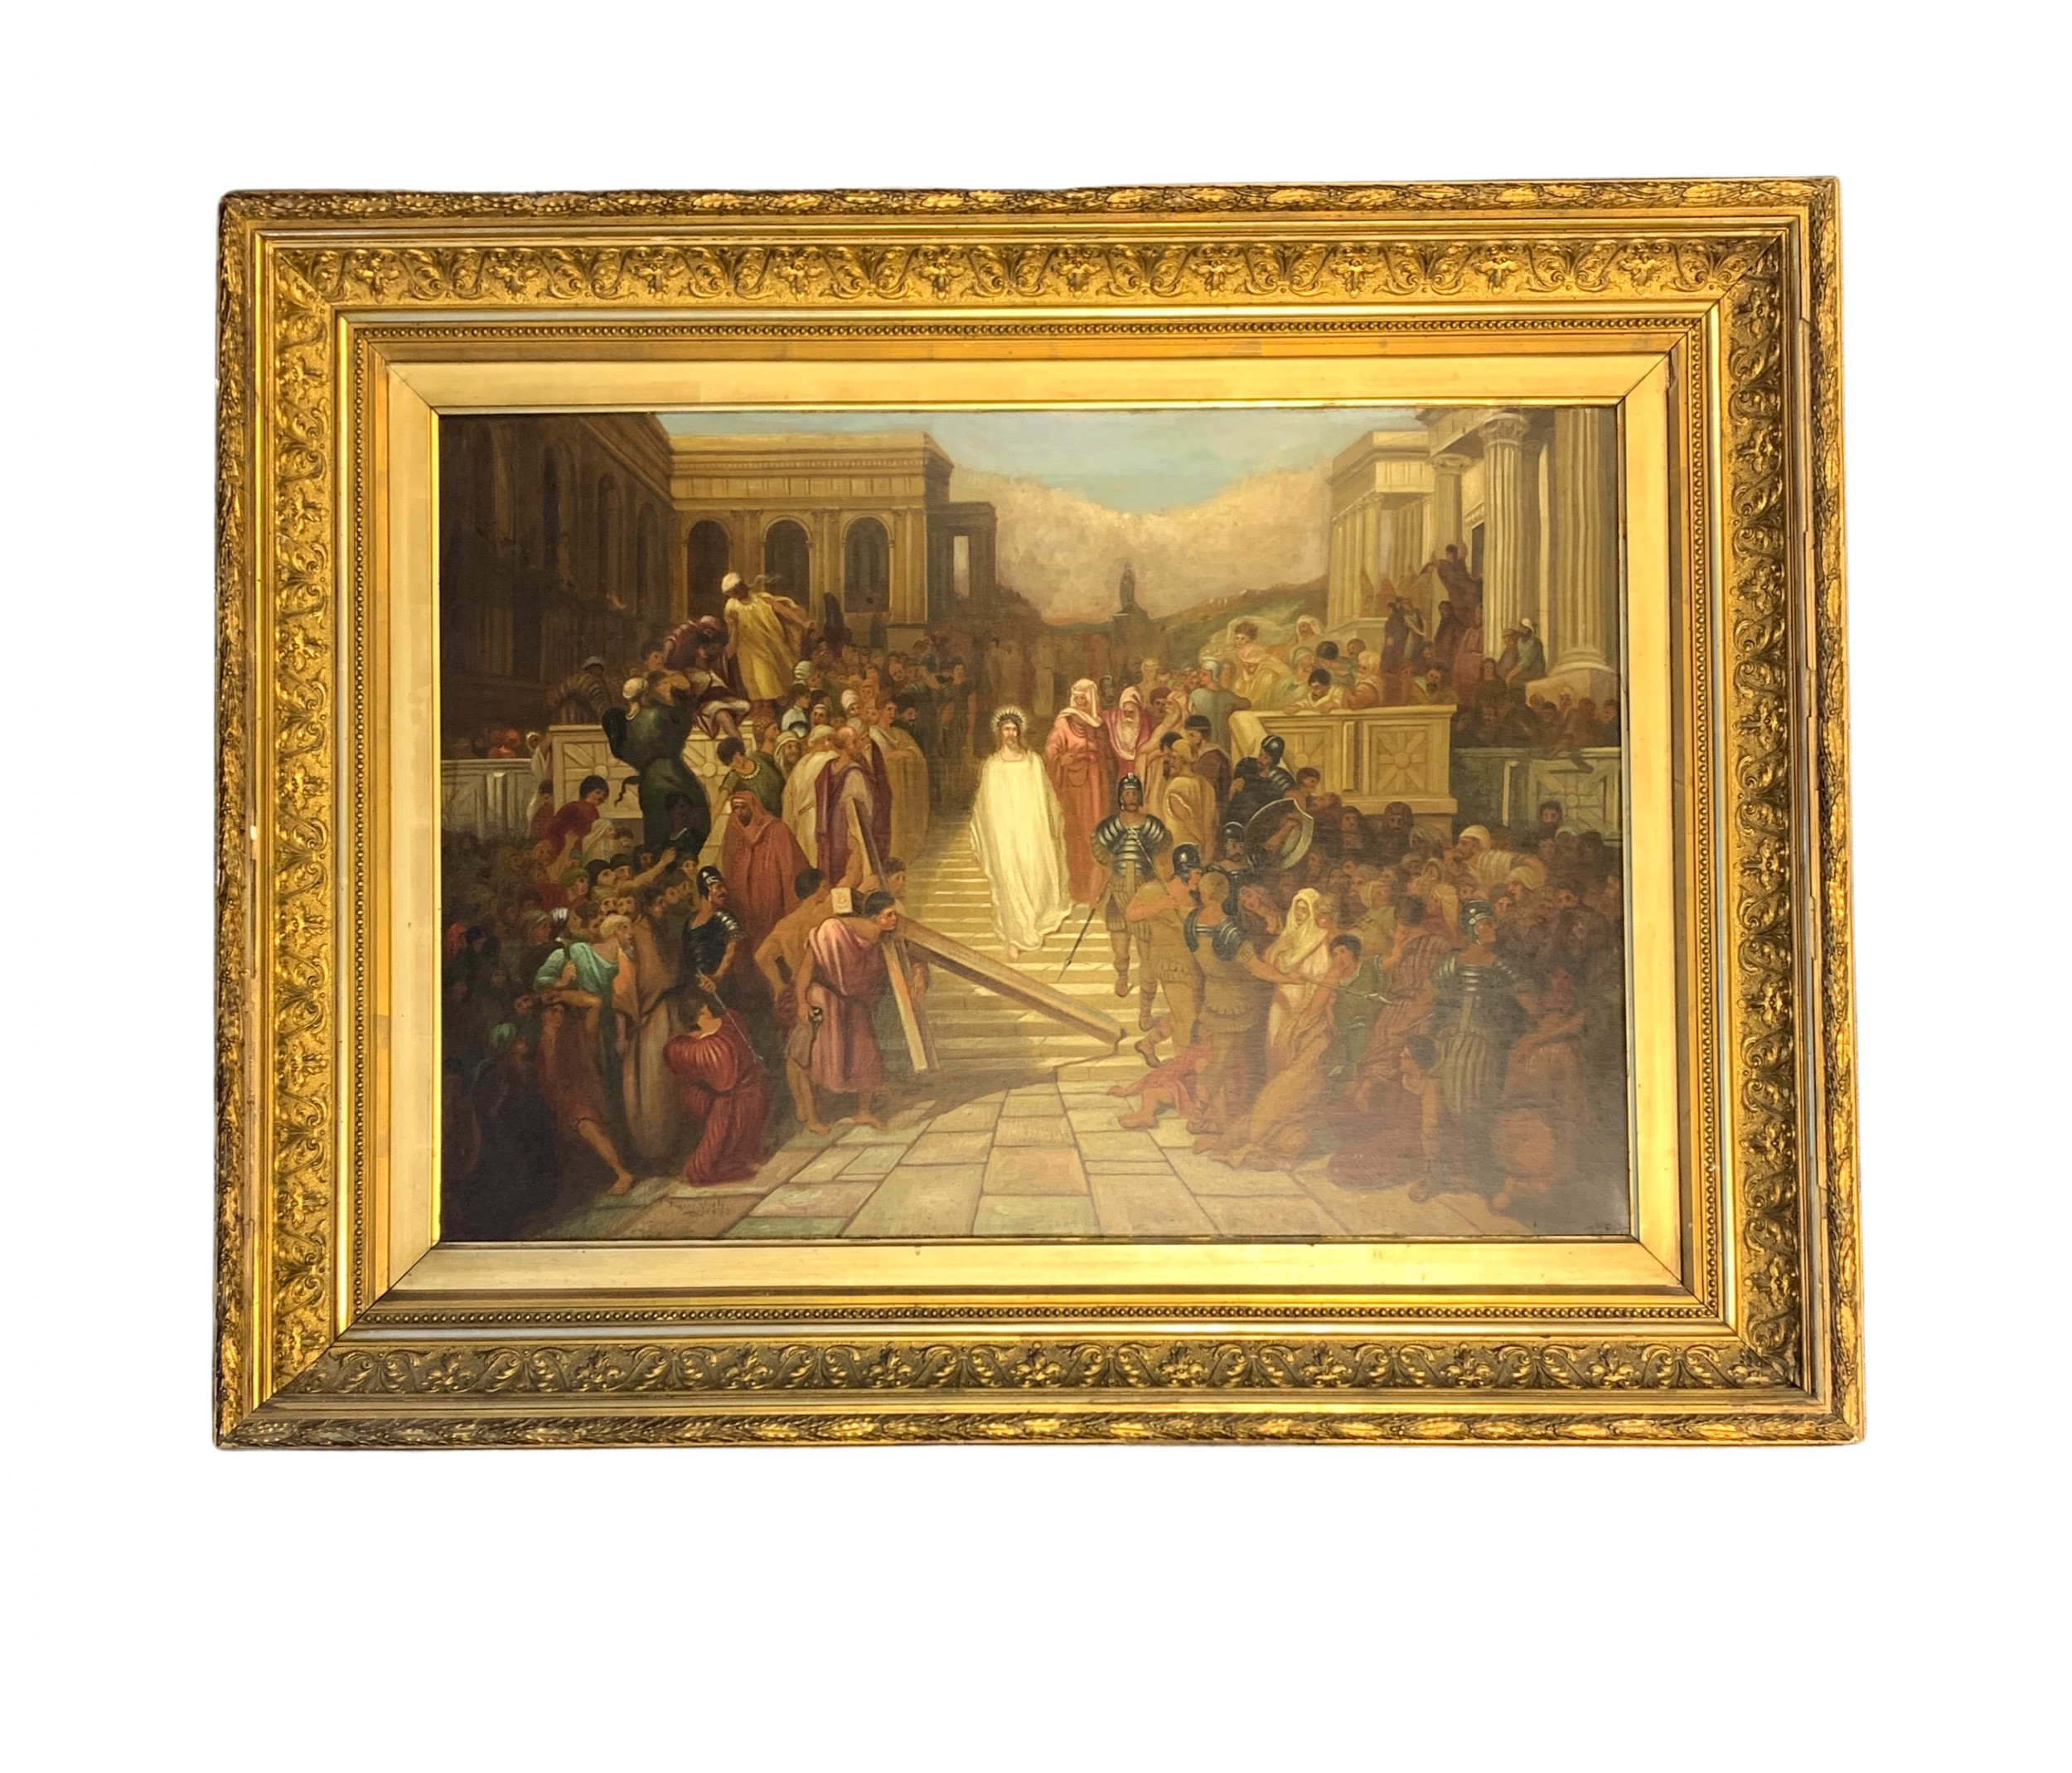 oil on canvas painting depicts christ by eugene hindle